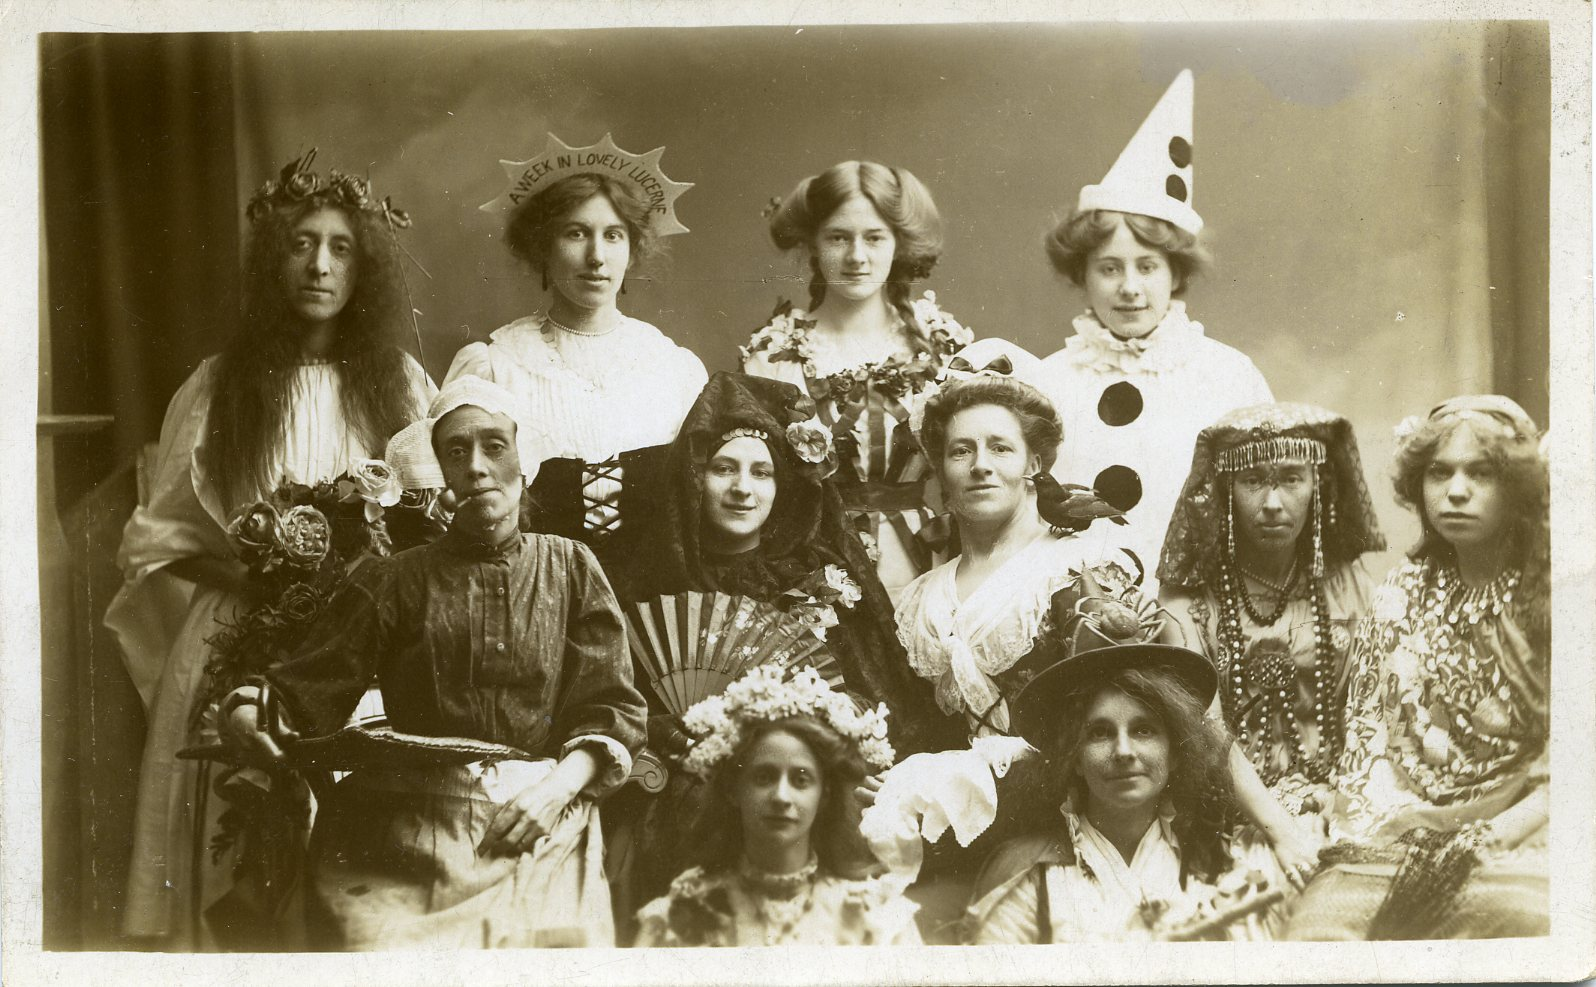 Women at a fancy dress party sometime around 1910